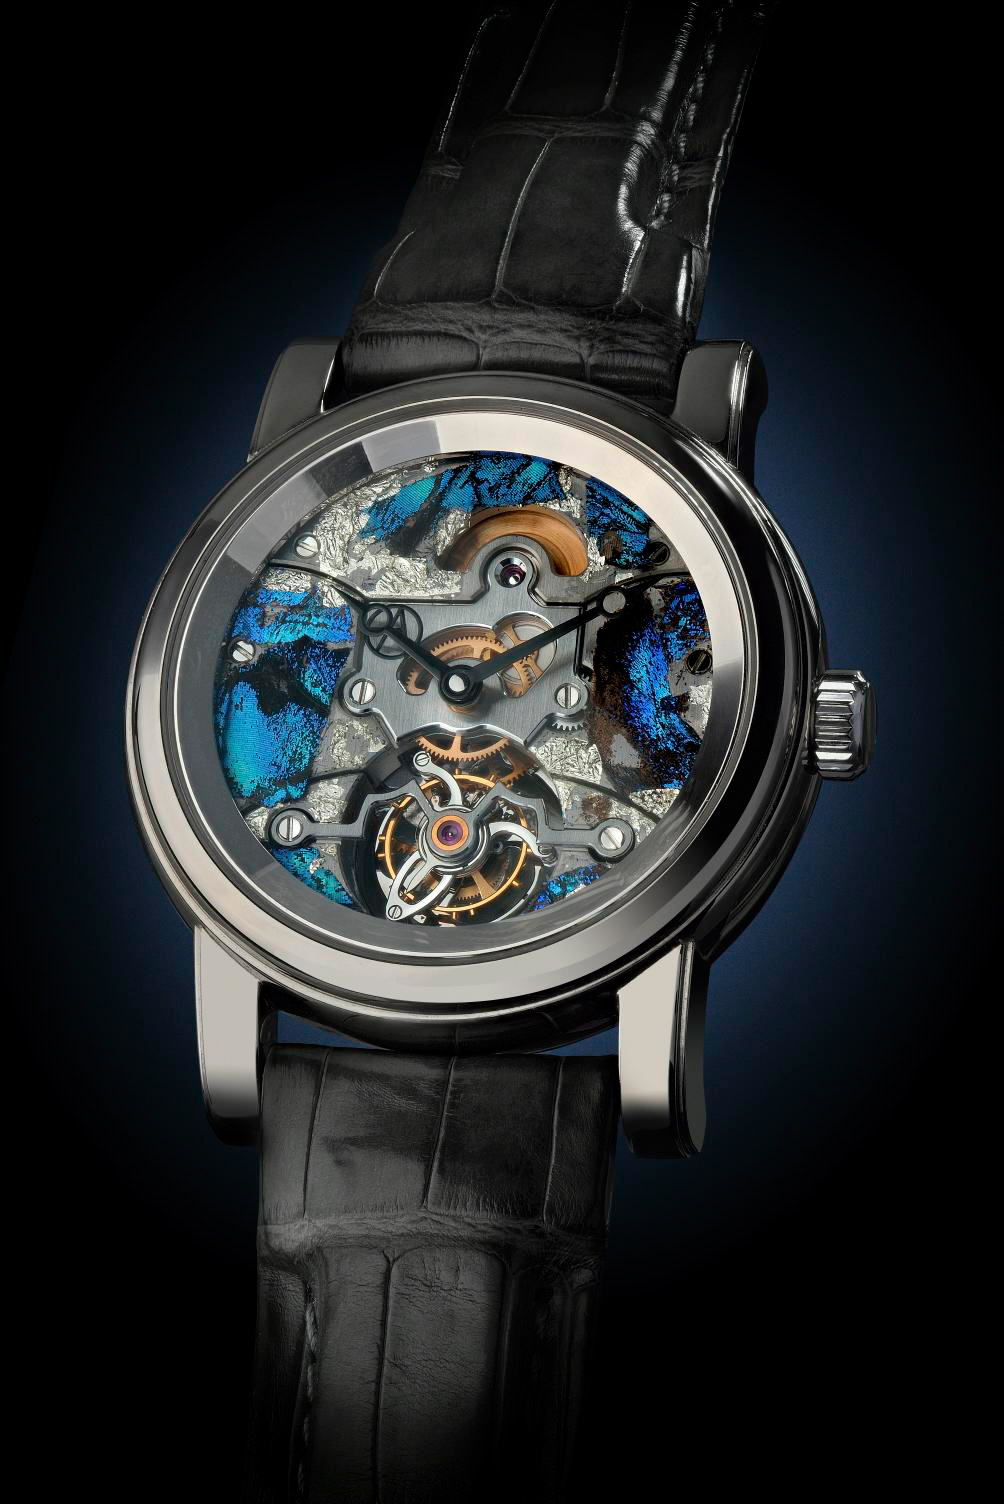 Часы Microcosmos Tourbillon от ArtyA